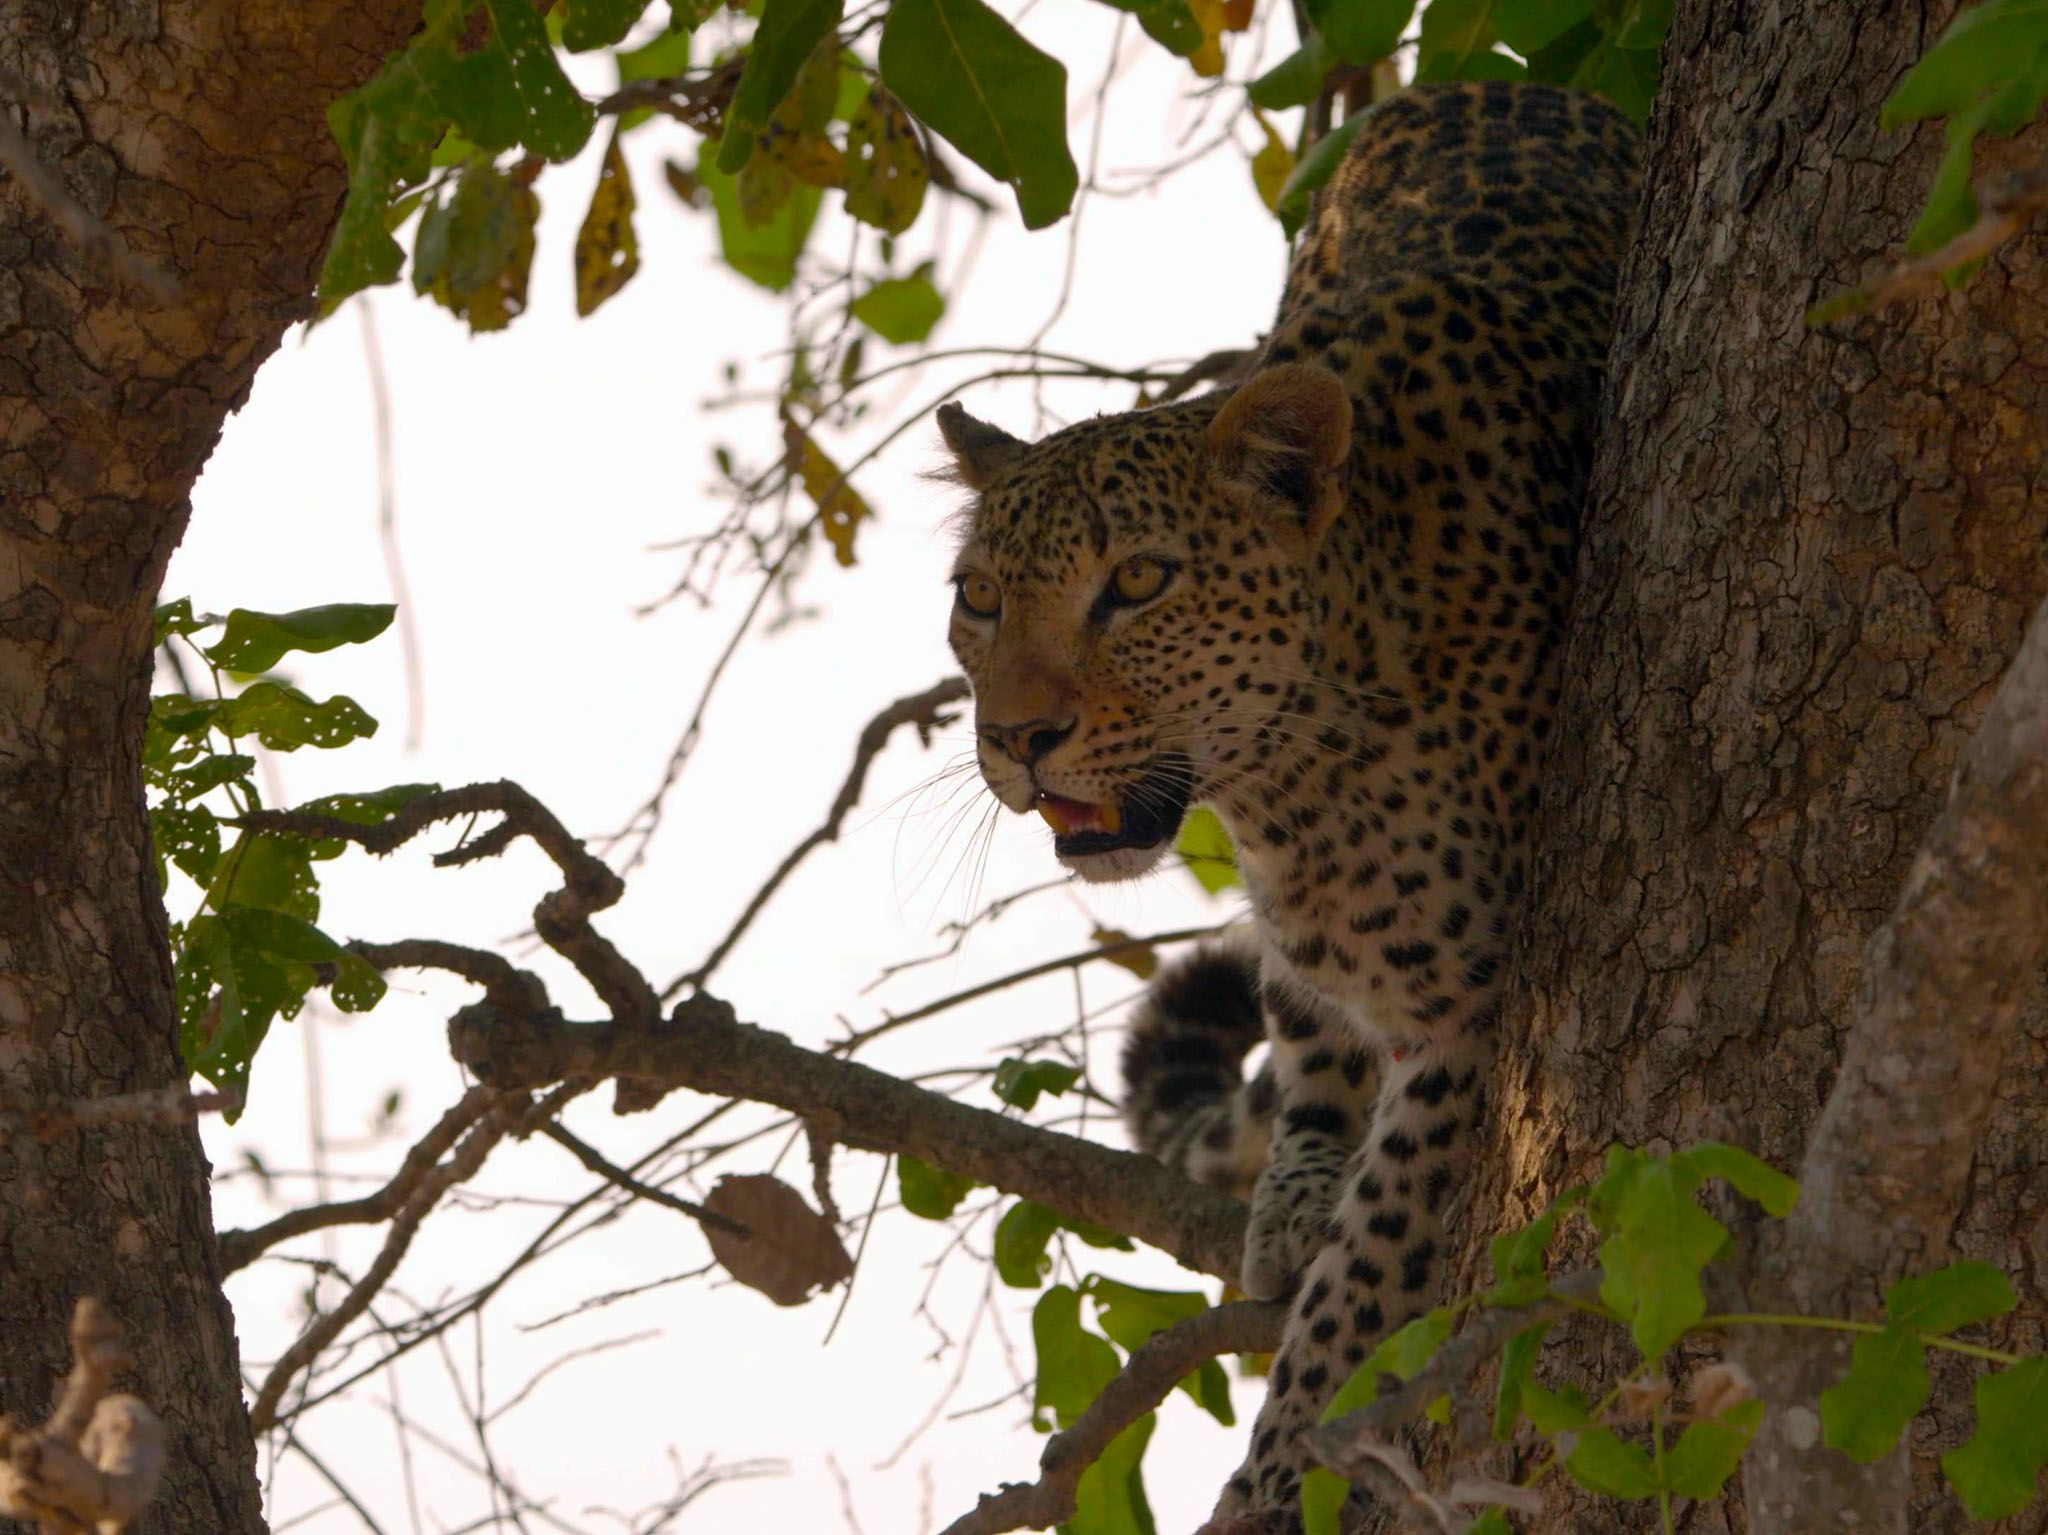 Male Leopard up on a branch. This image is from Africa's Hunters. [Photo of the day - March 2020]